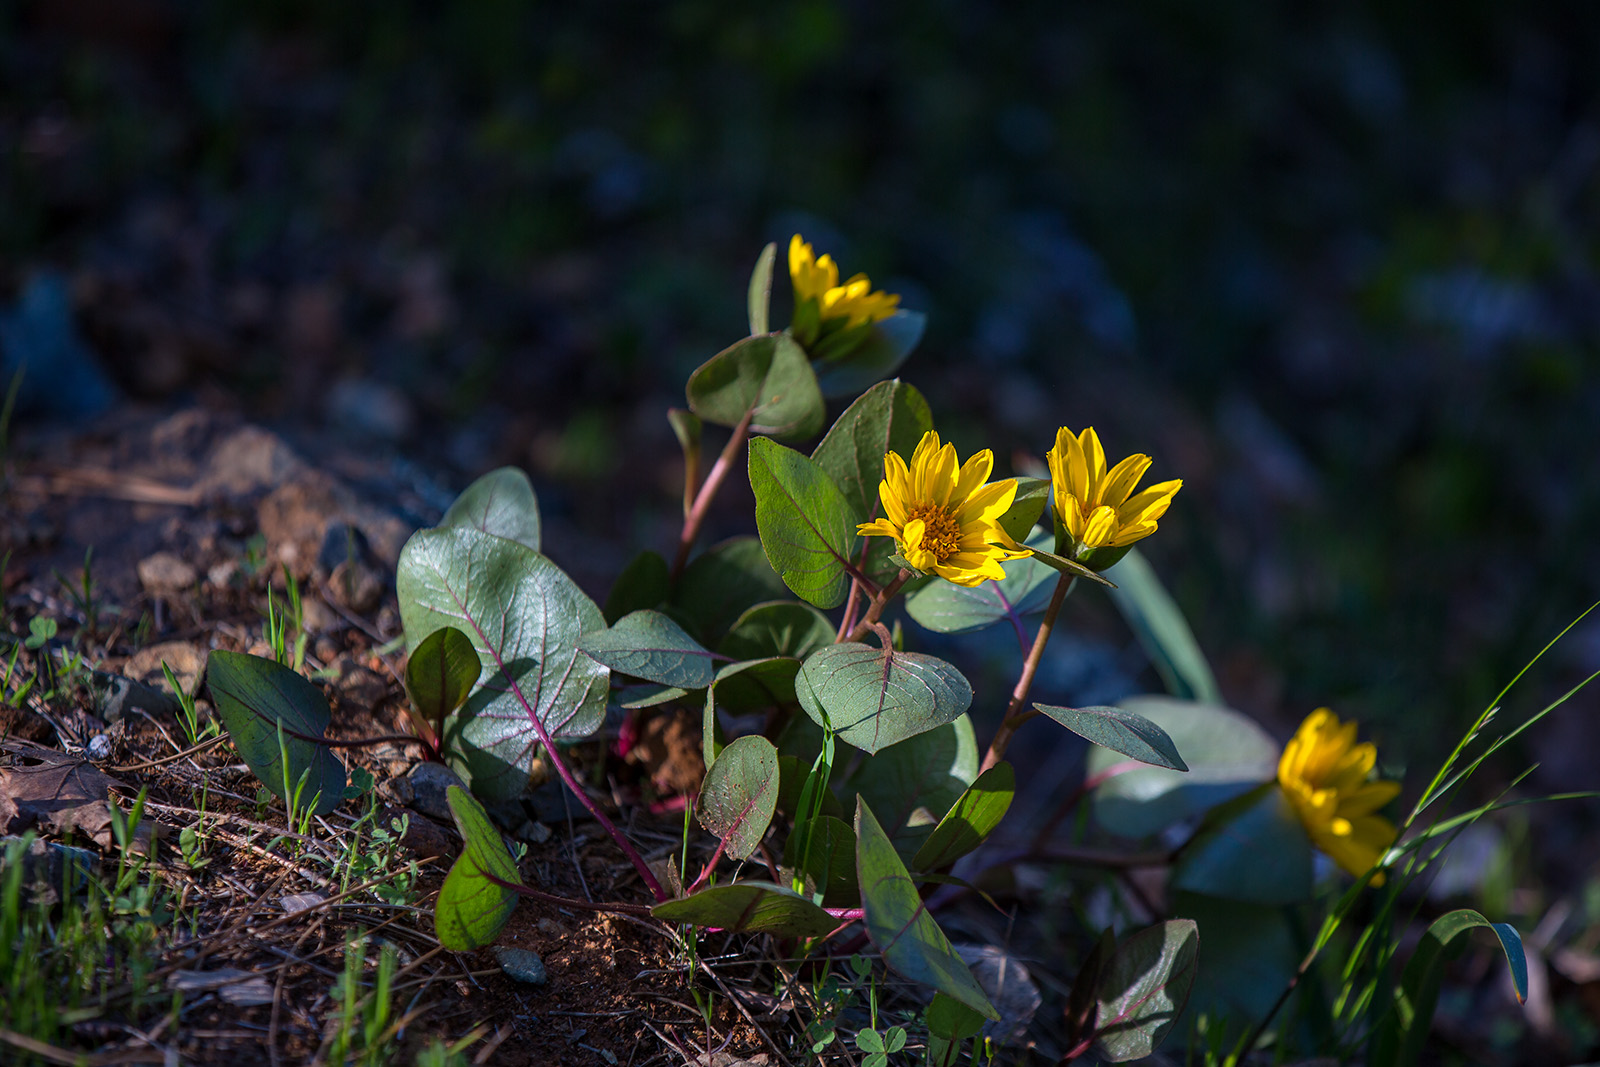 Flowers and foliage of <i>Wyethia bolanderi</i>